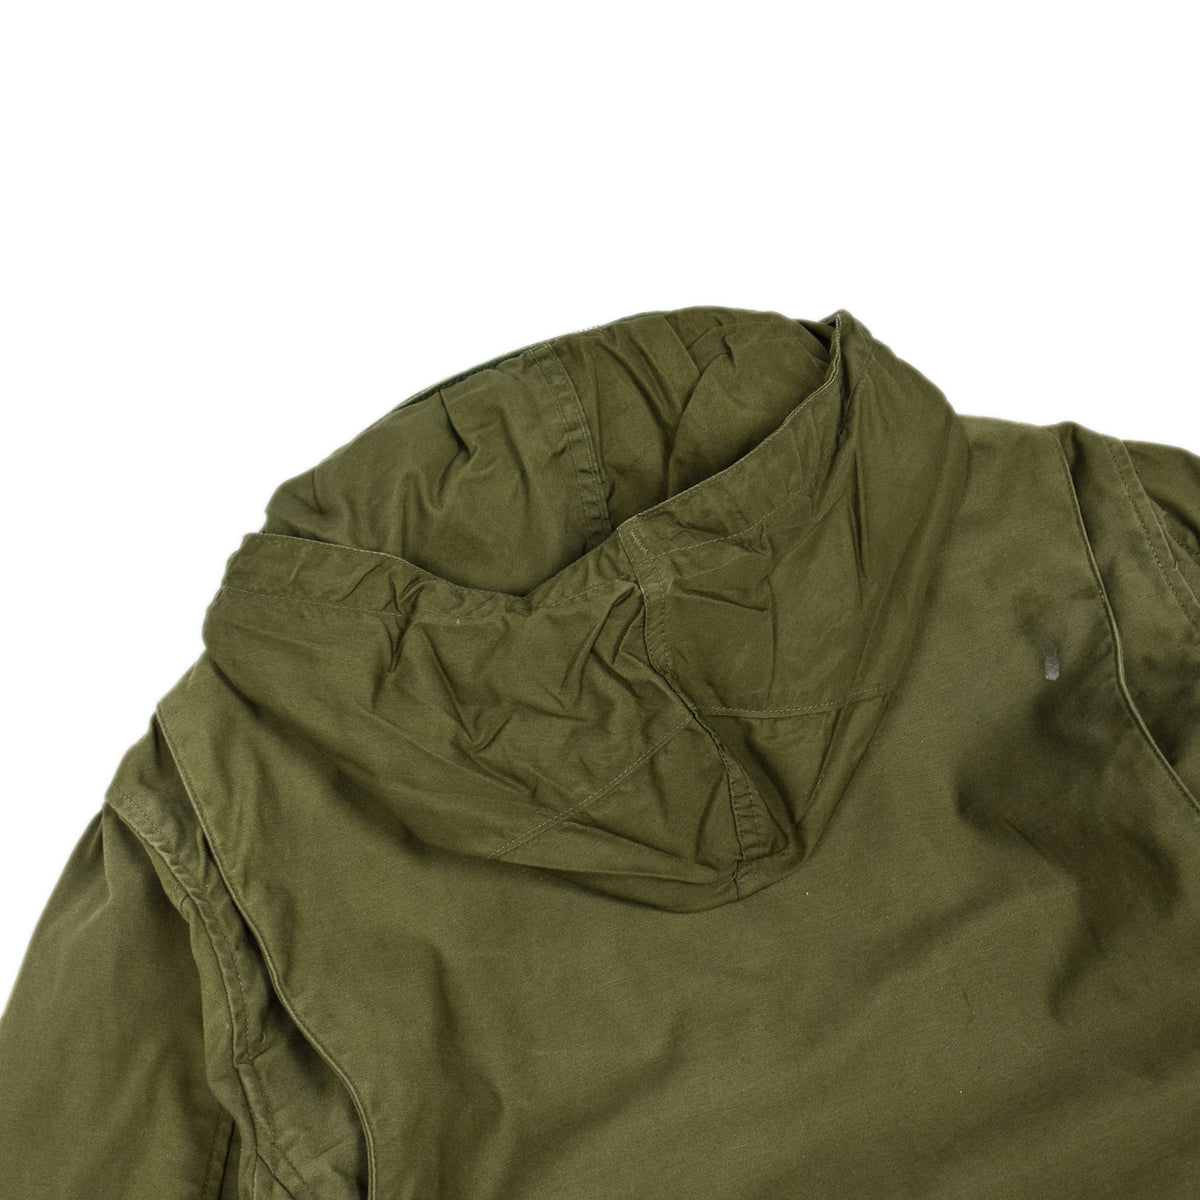 Vintage 60s Vietnam M-65 Man's Field Sateen 0G-107 Green US Army Coat S / M hood